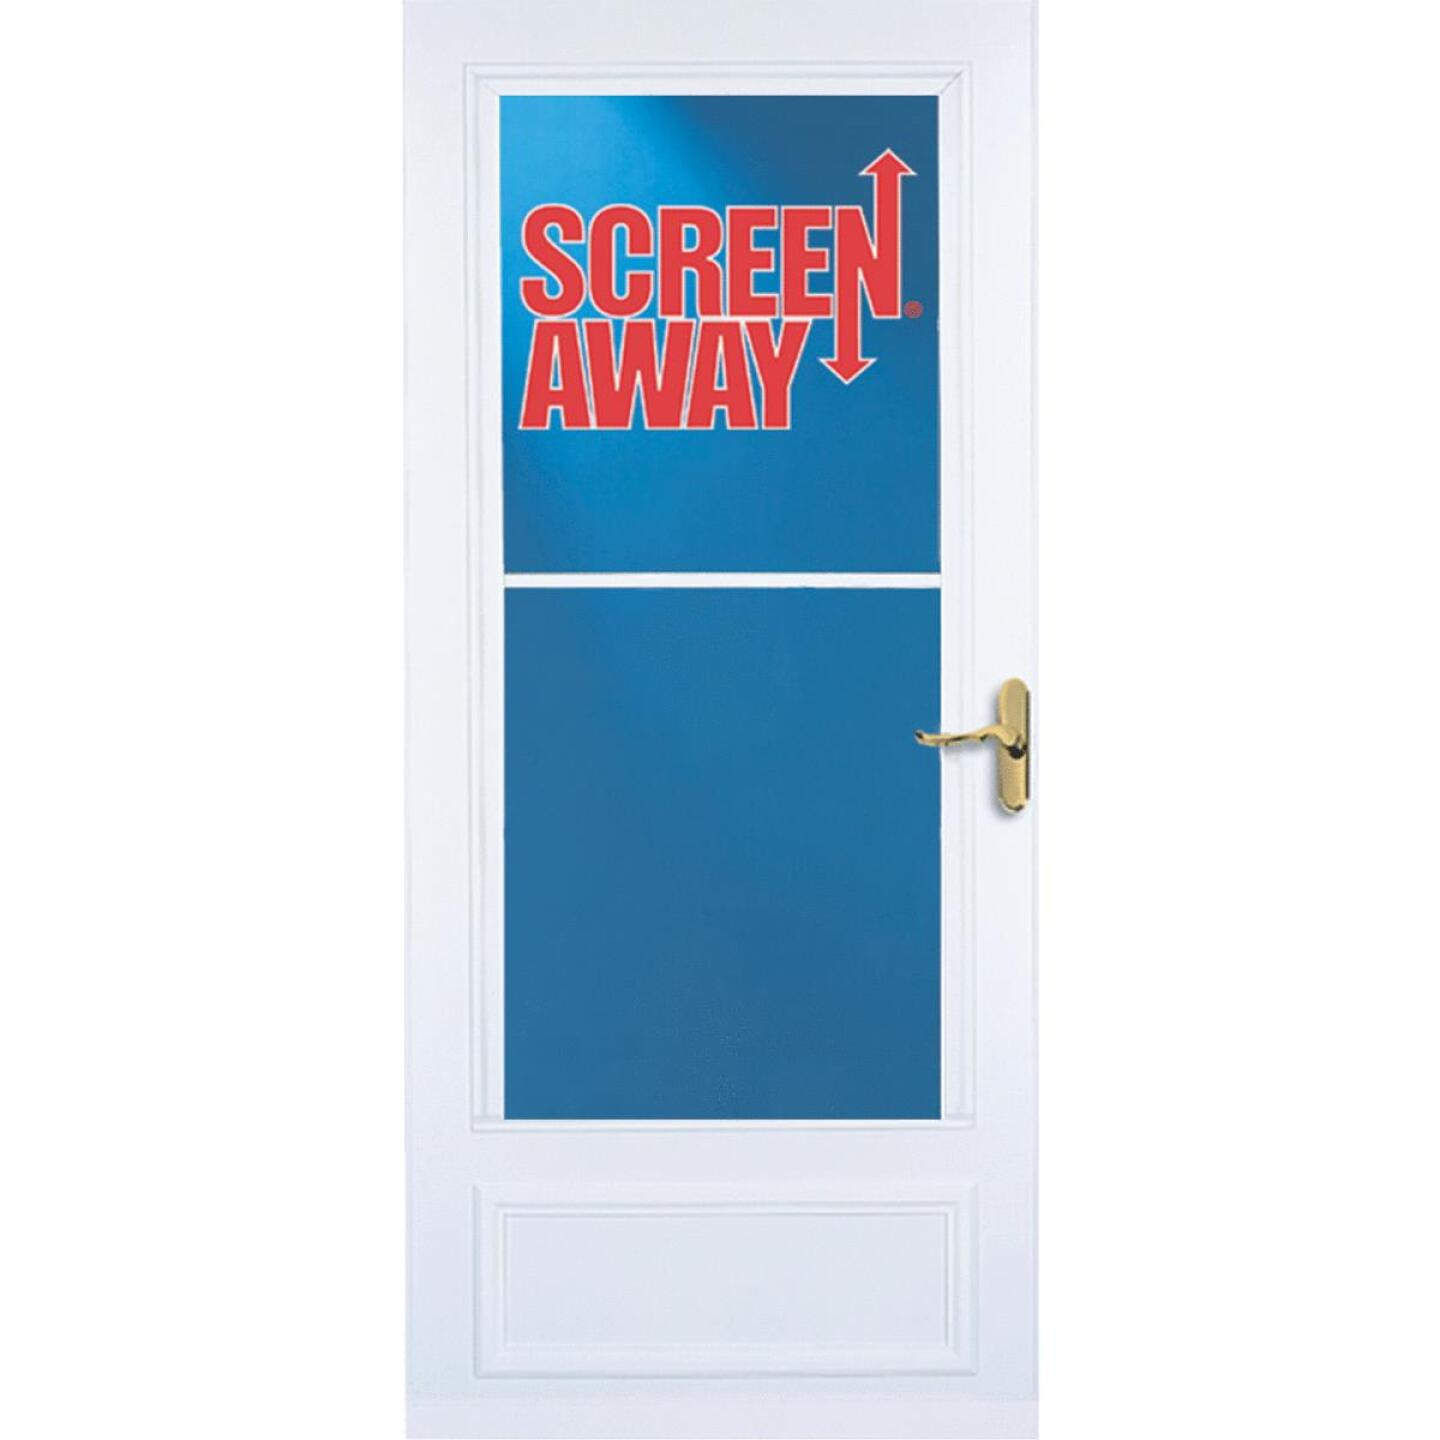 Larson Screenaway Lifestyle 32 In. W x 80 In. H x 1 In. Thick White Mid View DuraTech Storm Door Image 2